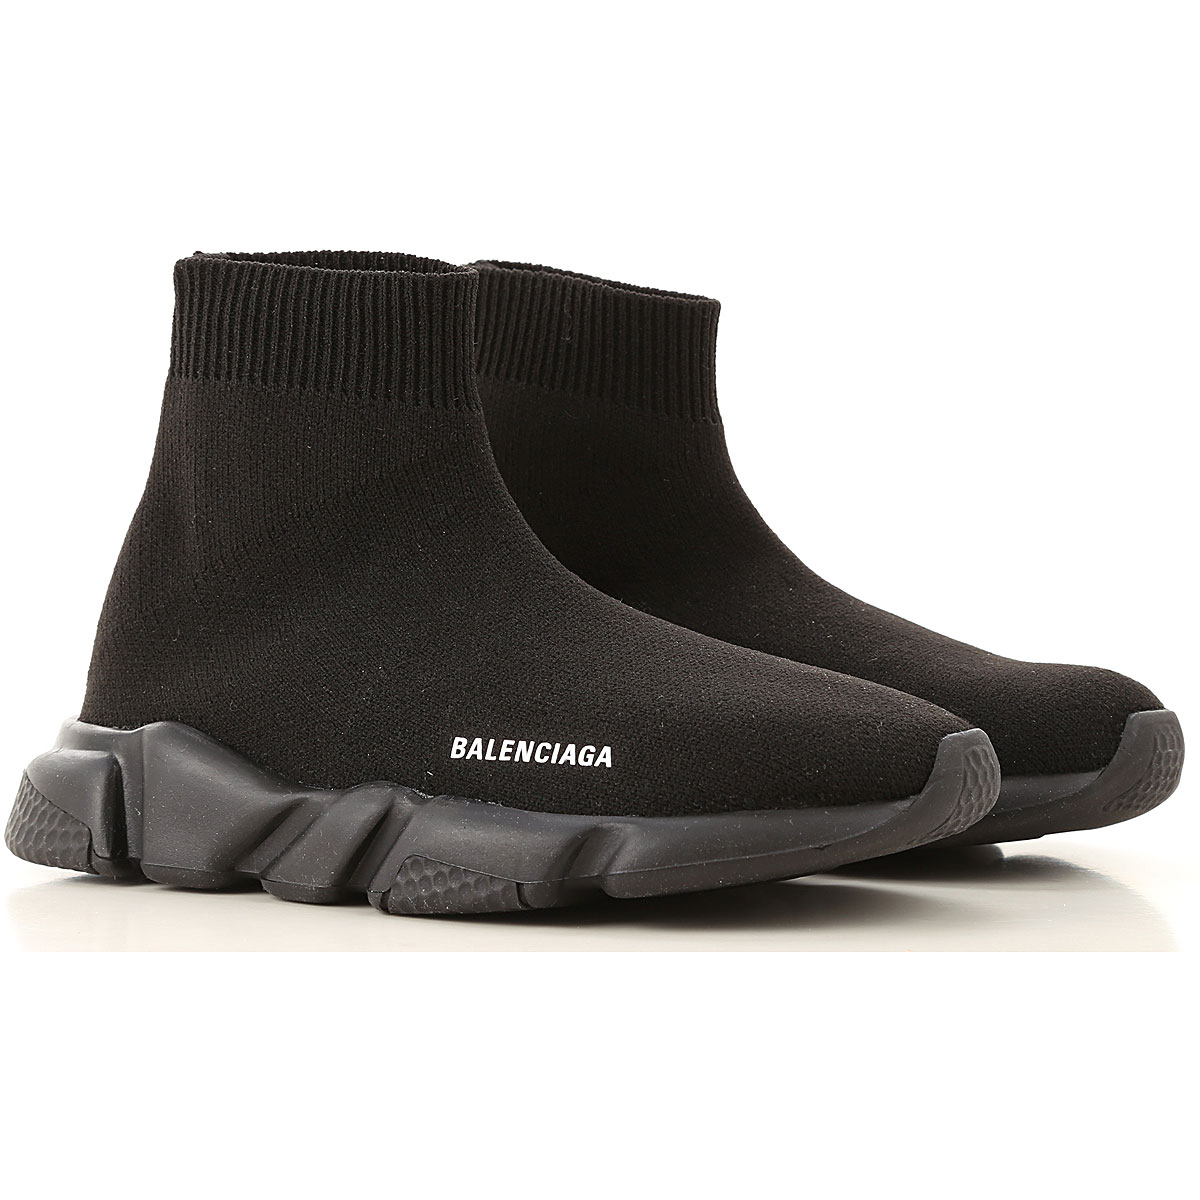 Balenciaga Kids Shoes for Boys On Sale, Black, Fabric, 2019, 11-11.5 9-9.5